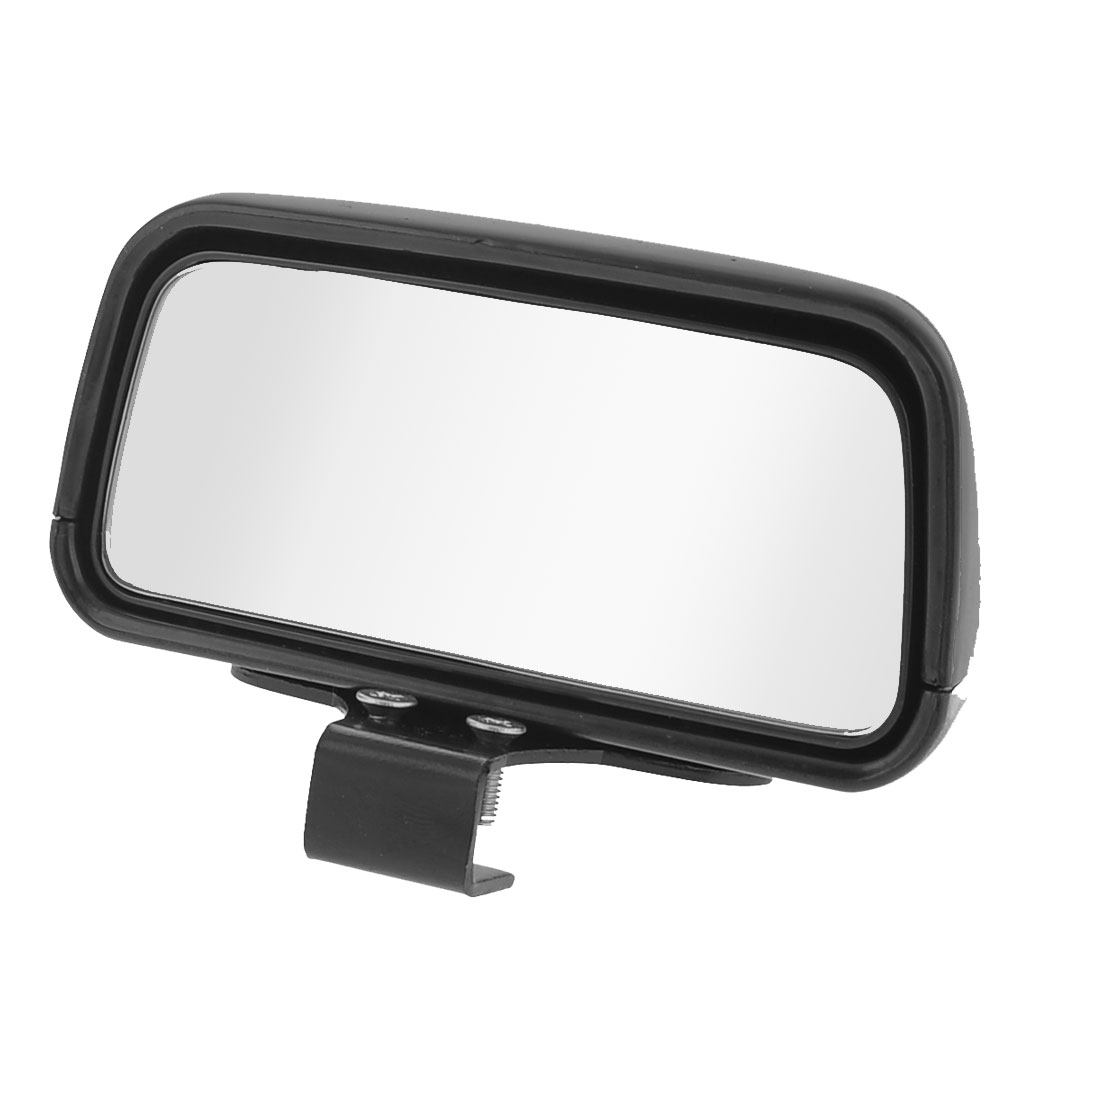 Black Casing Adjustable Rear View Blind Spot Auxiliary Mirror for Vehicle Car